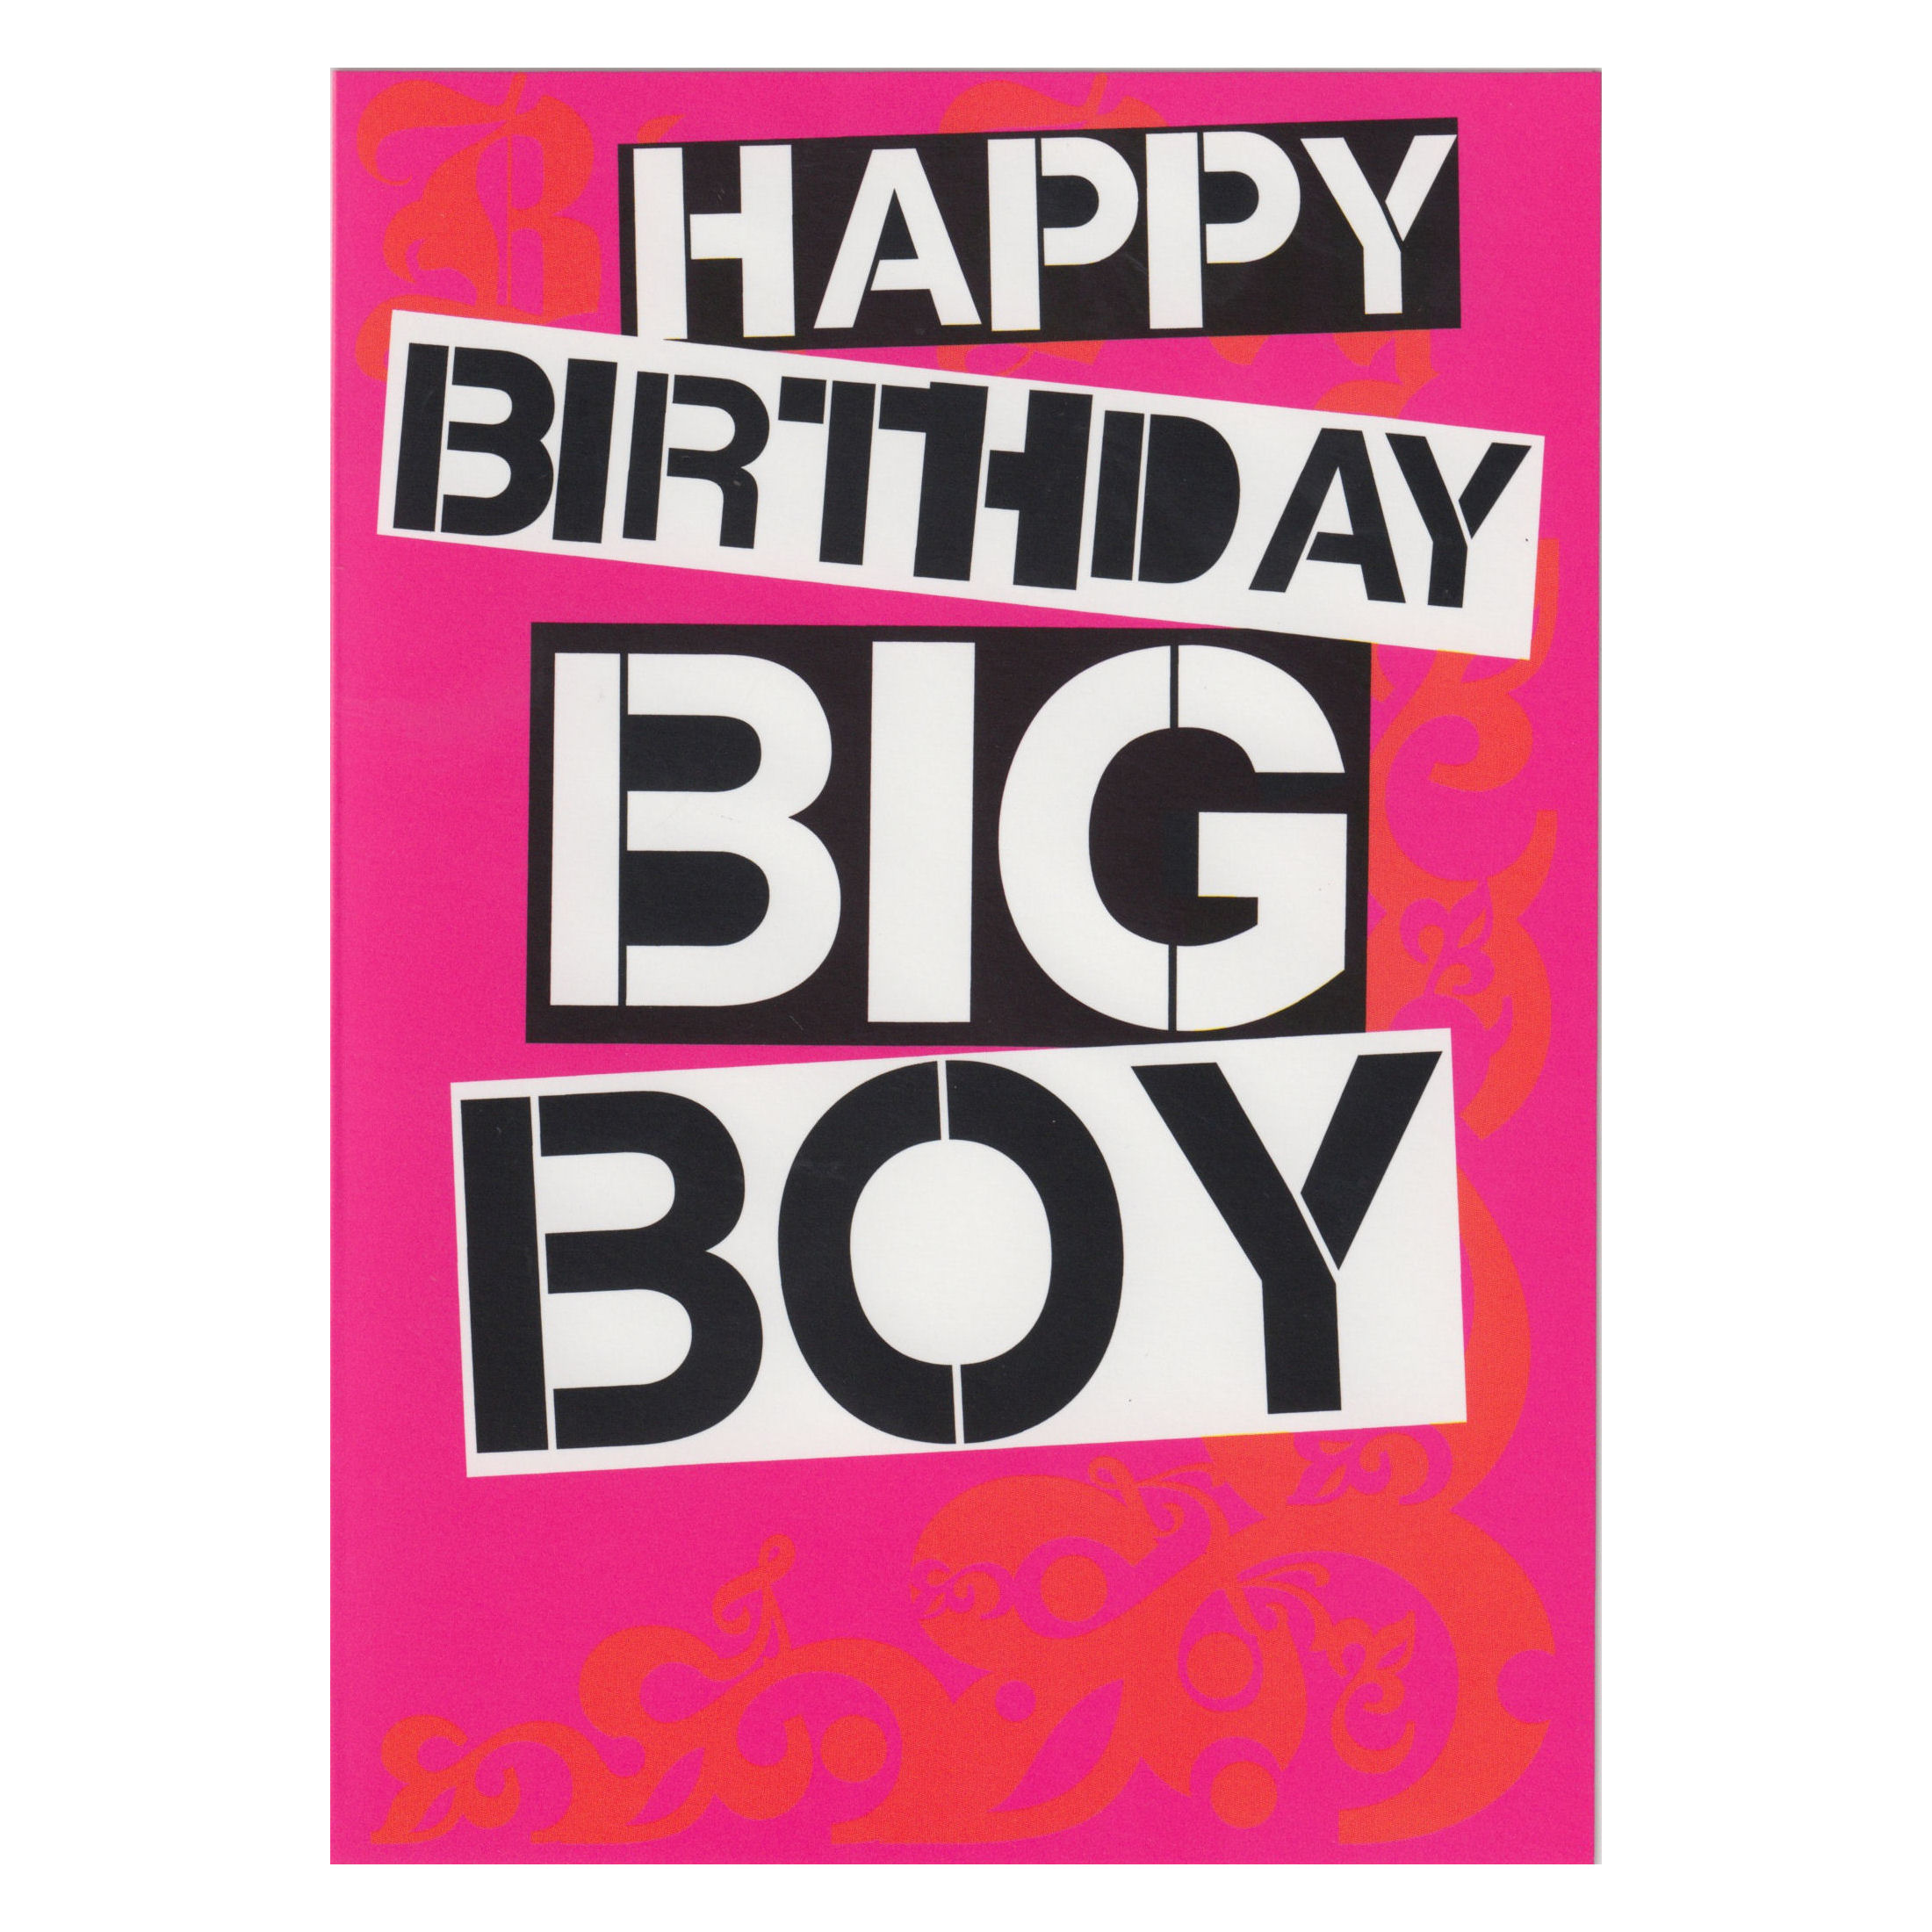 happy birthday big boy greeting card retro adult humour blank gift, Birthday card